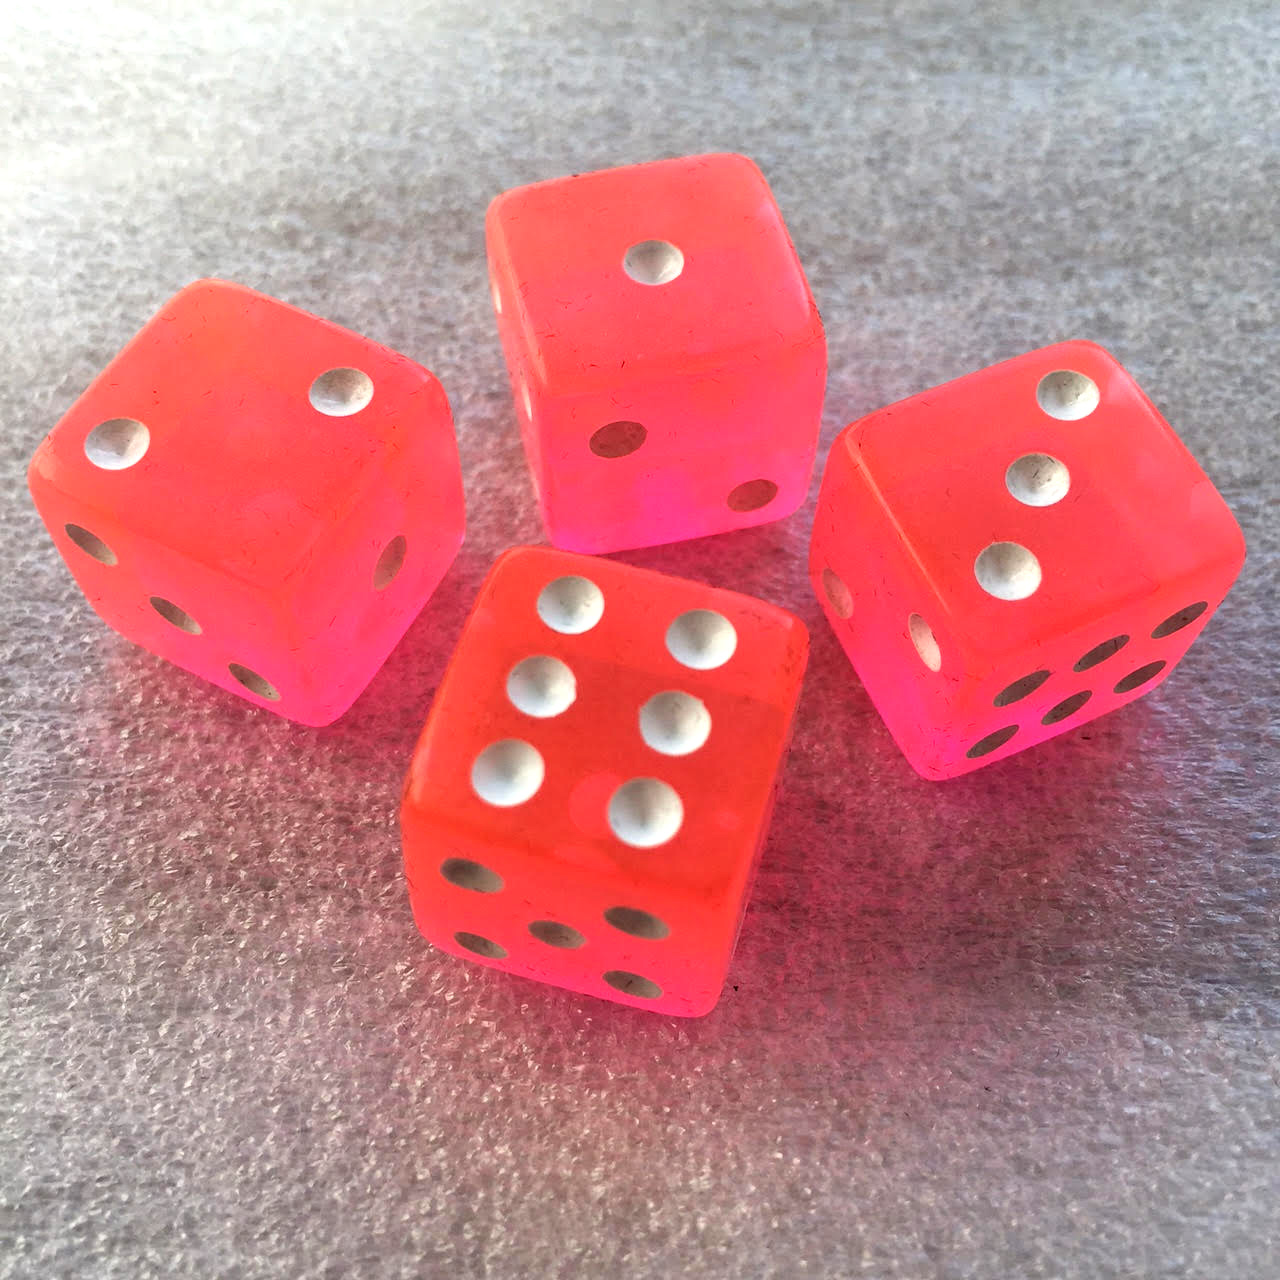 Pink dice (x4 in the 2nd add-on).